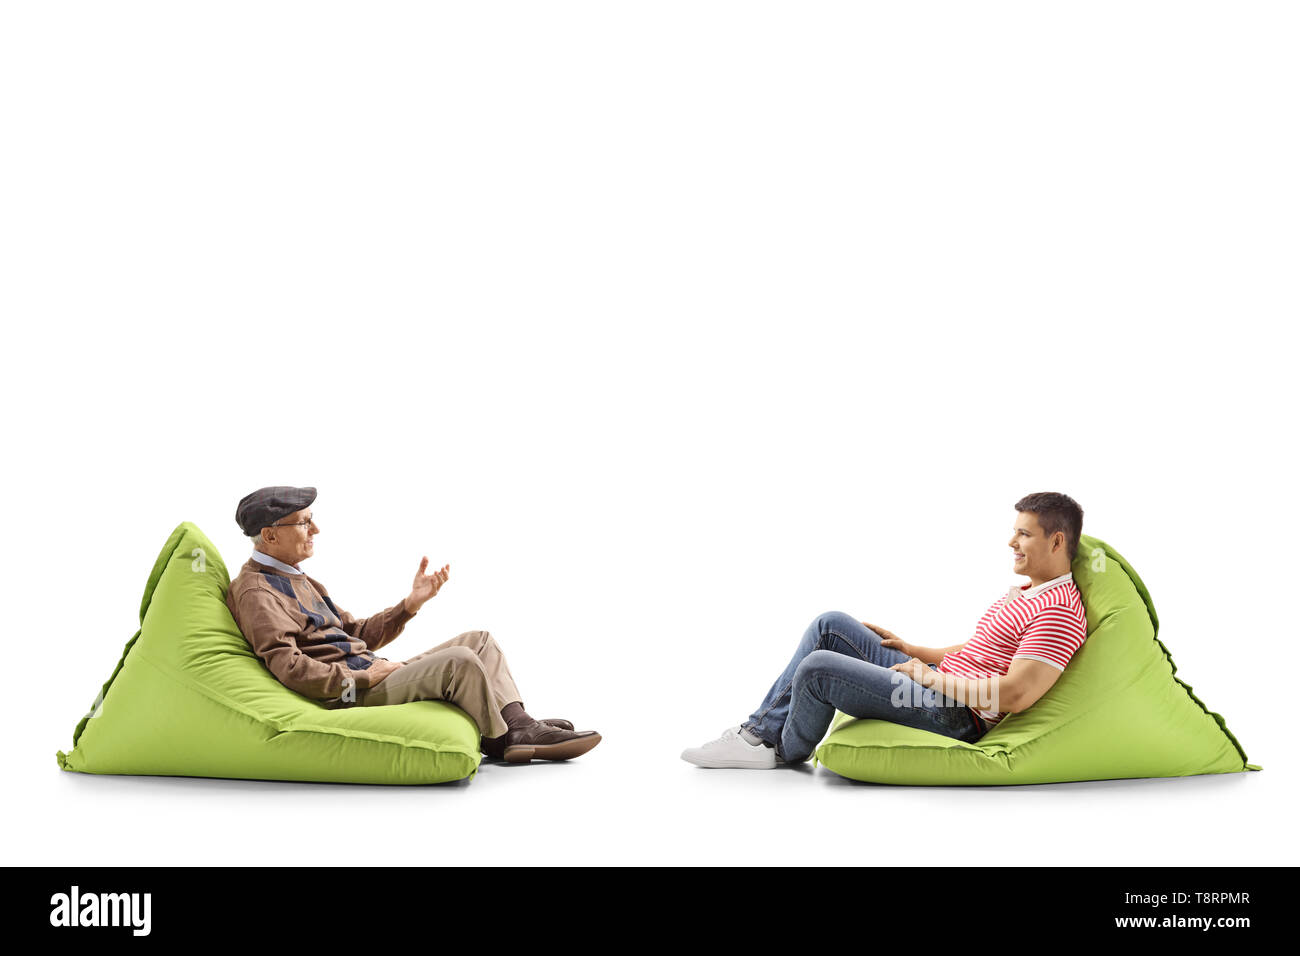 Full length profile shot of a young and elderly man sitting on bean bags and talking isolated on white background - Stock Image